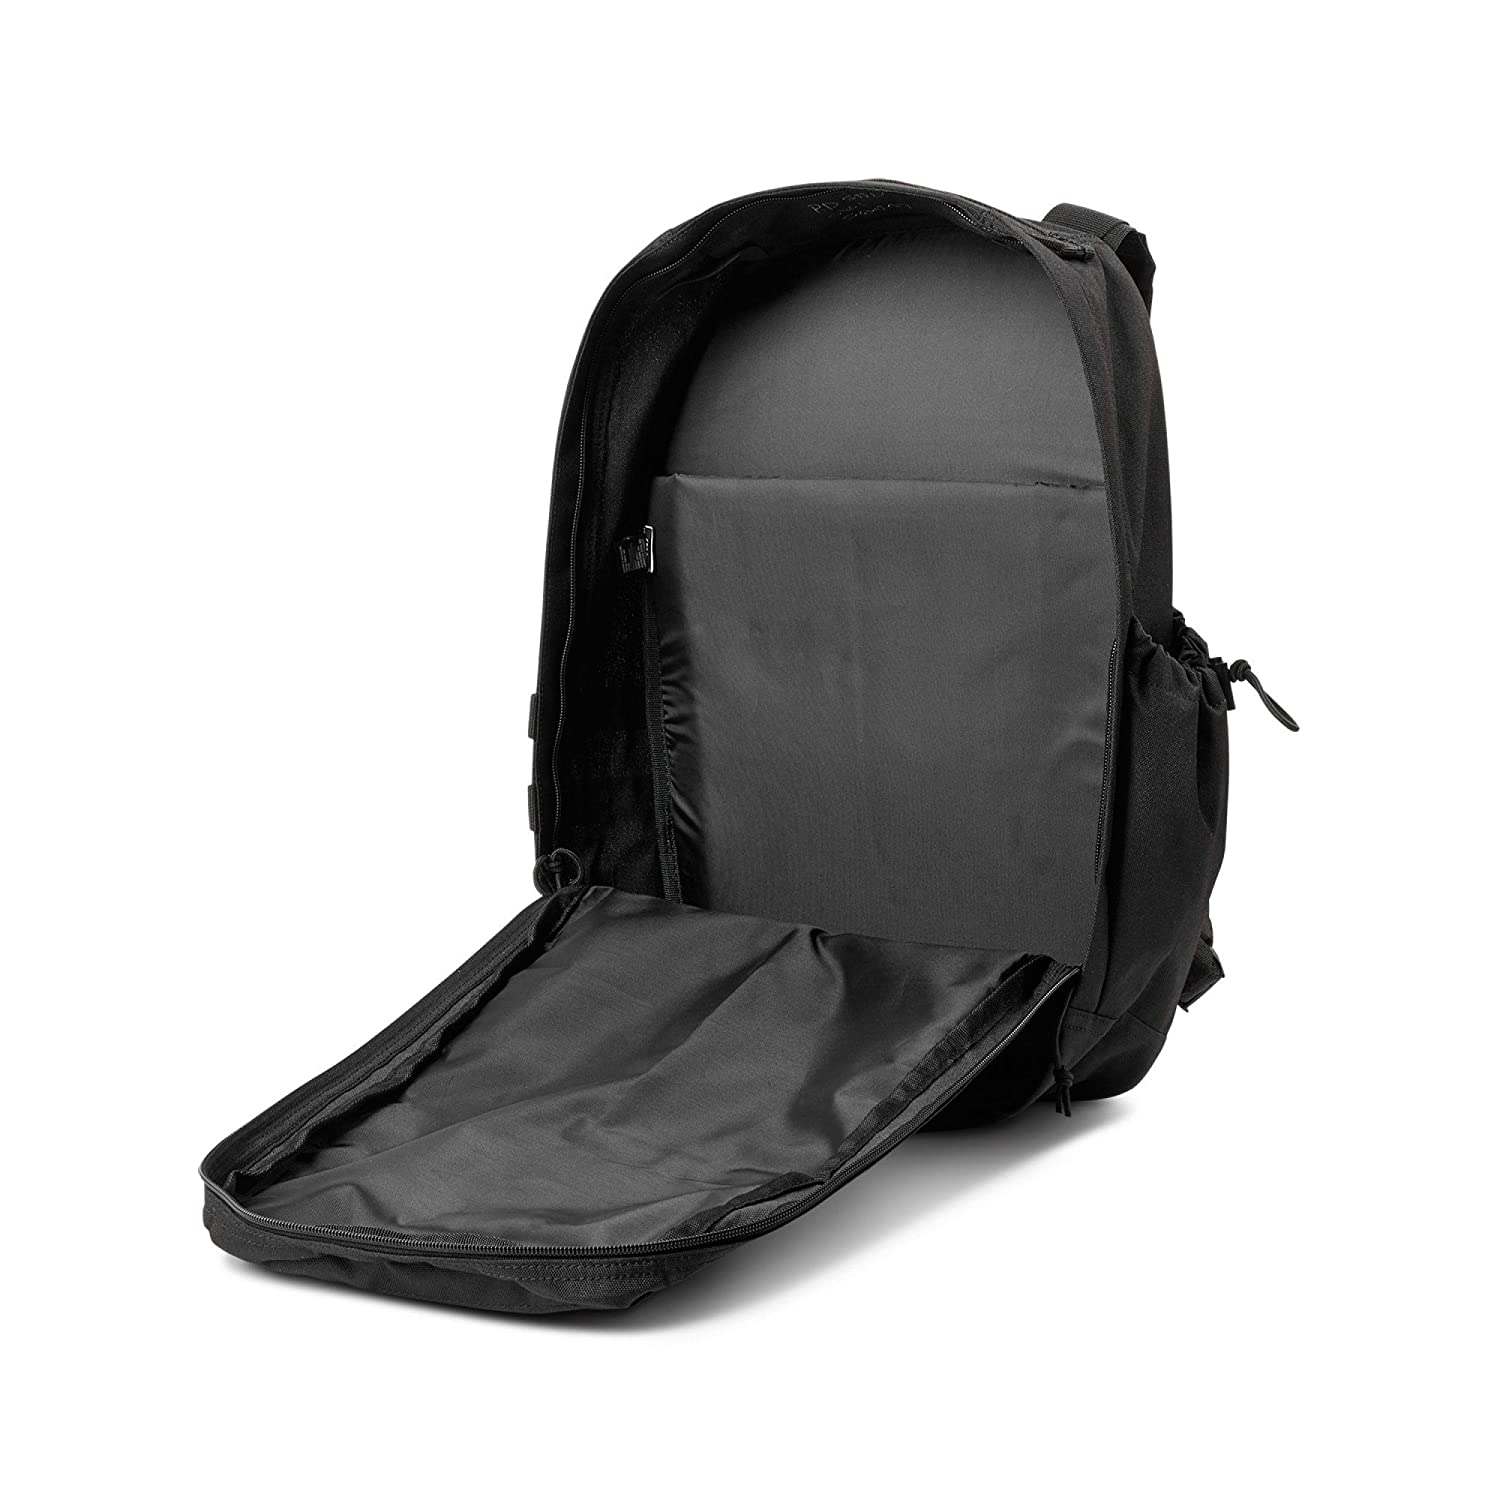 Negro 5.11 TACTICAL SERIES Morale Pack Mochila Tipo Casual Black 48 cm